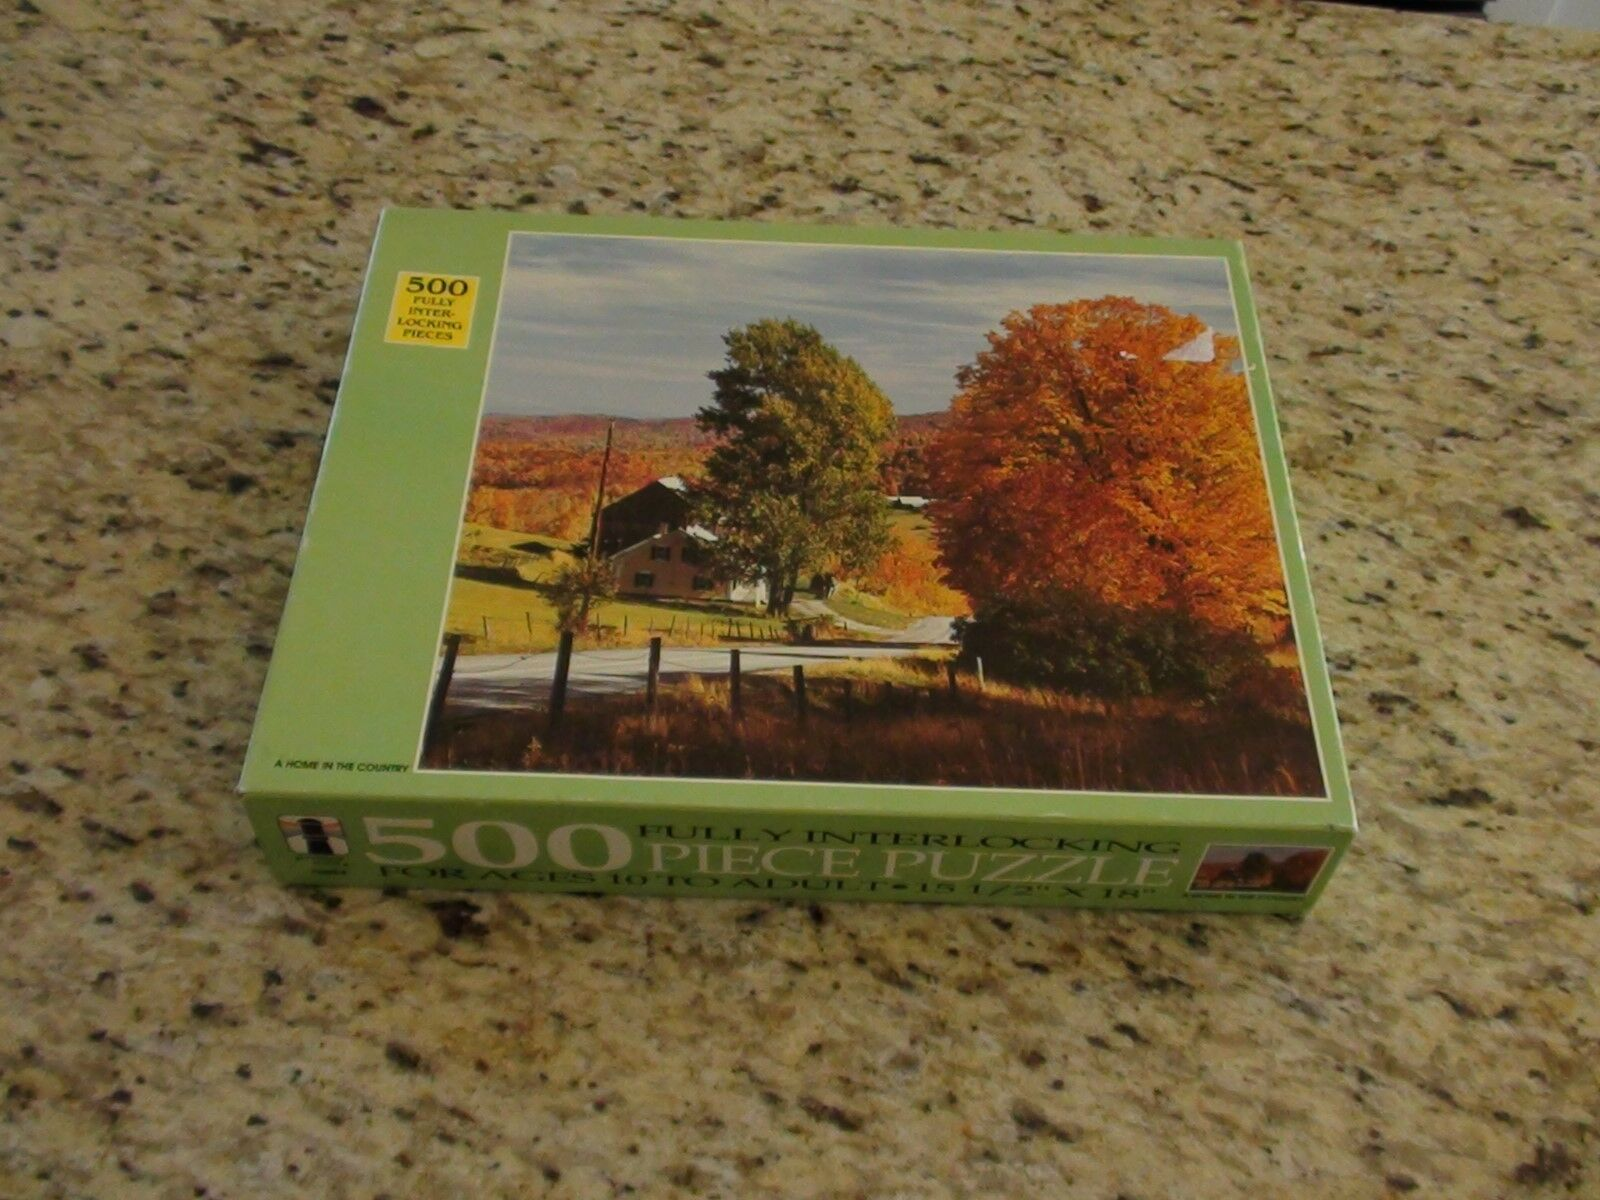 NEW SEALED Rainbow Works 75920-4 A Home in the Country 500 Piece Puzzle